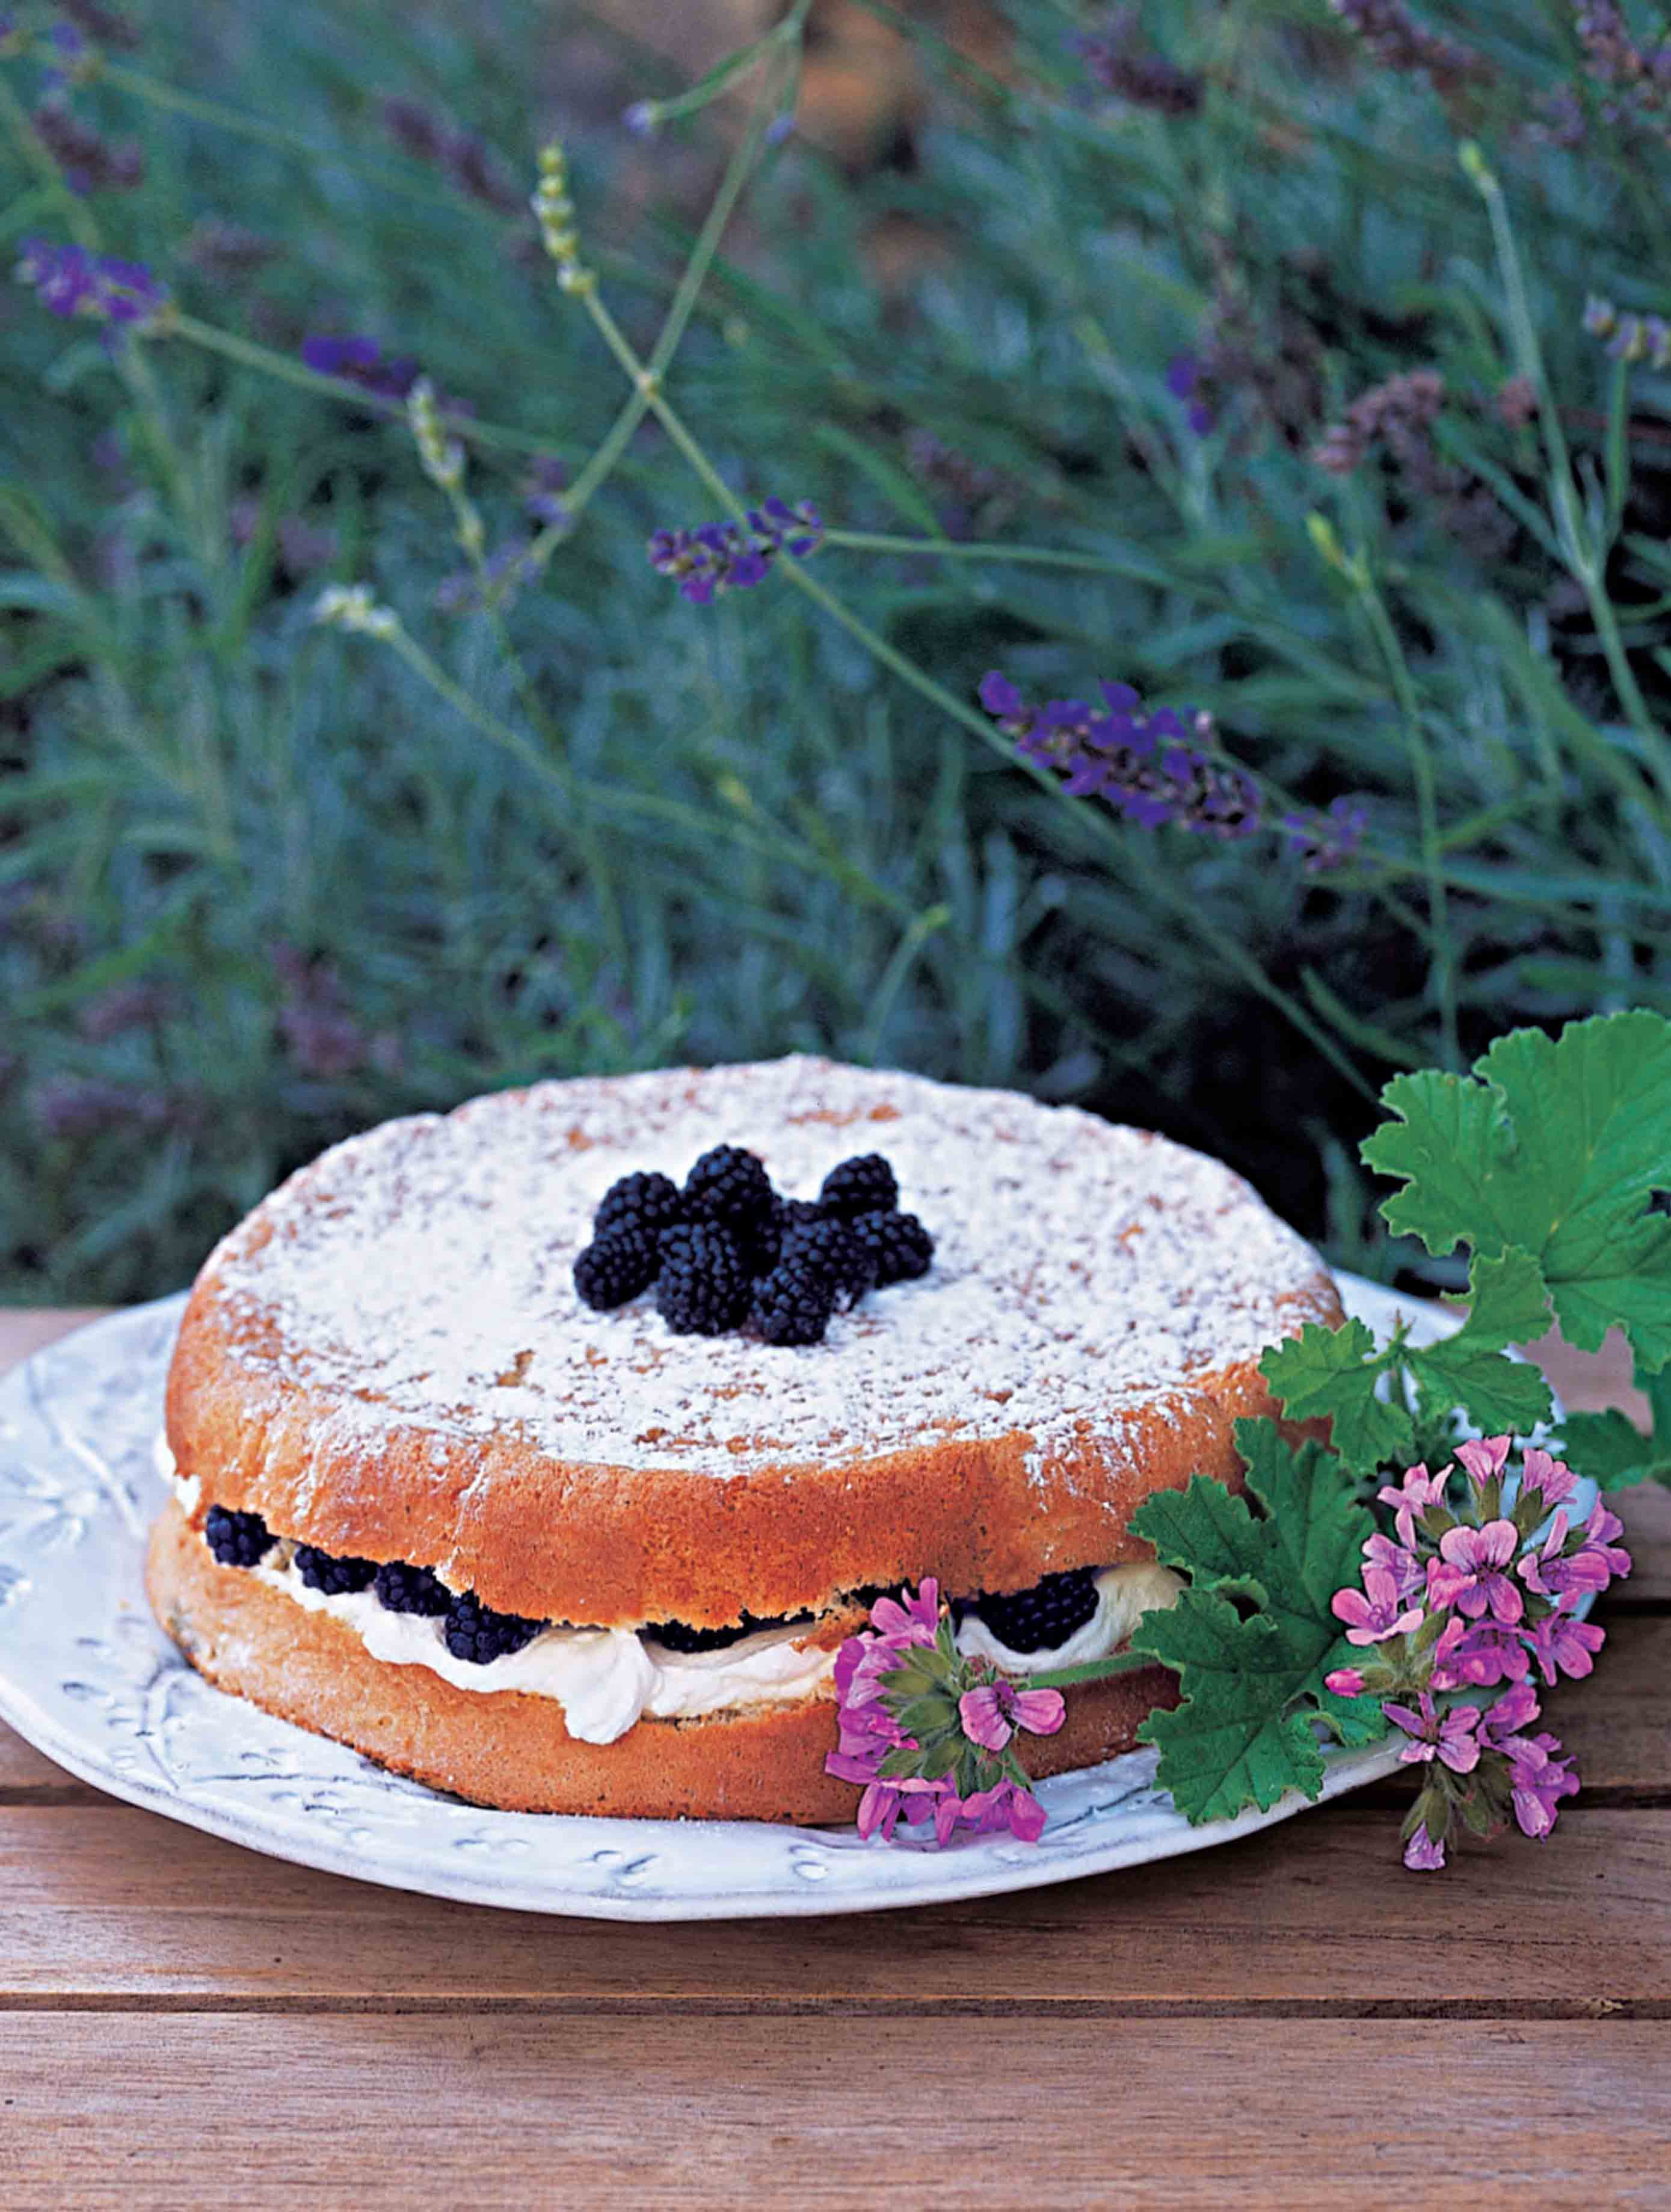 Blackberry and geranium genoese